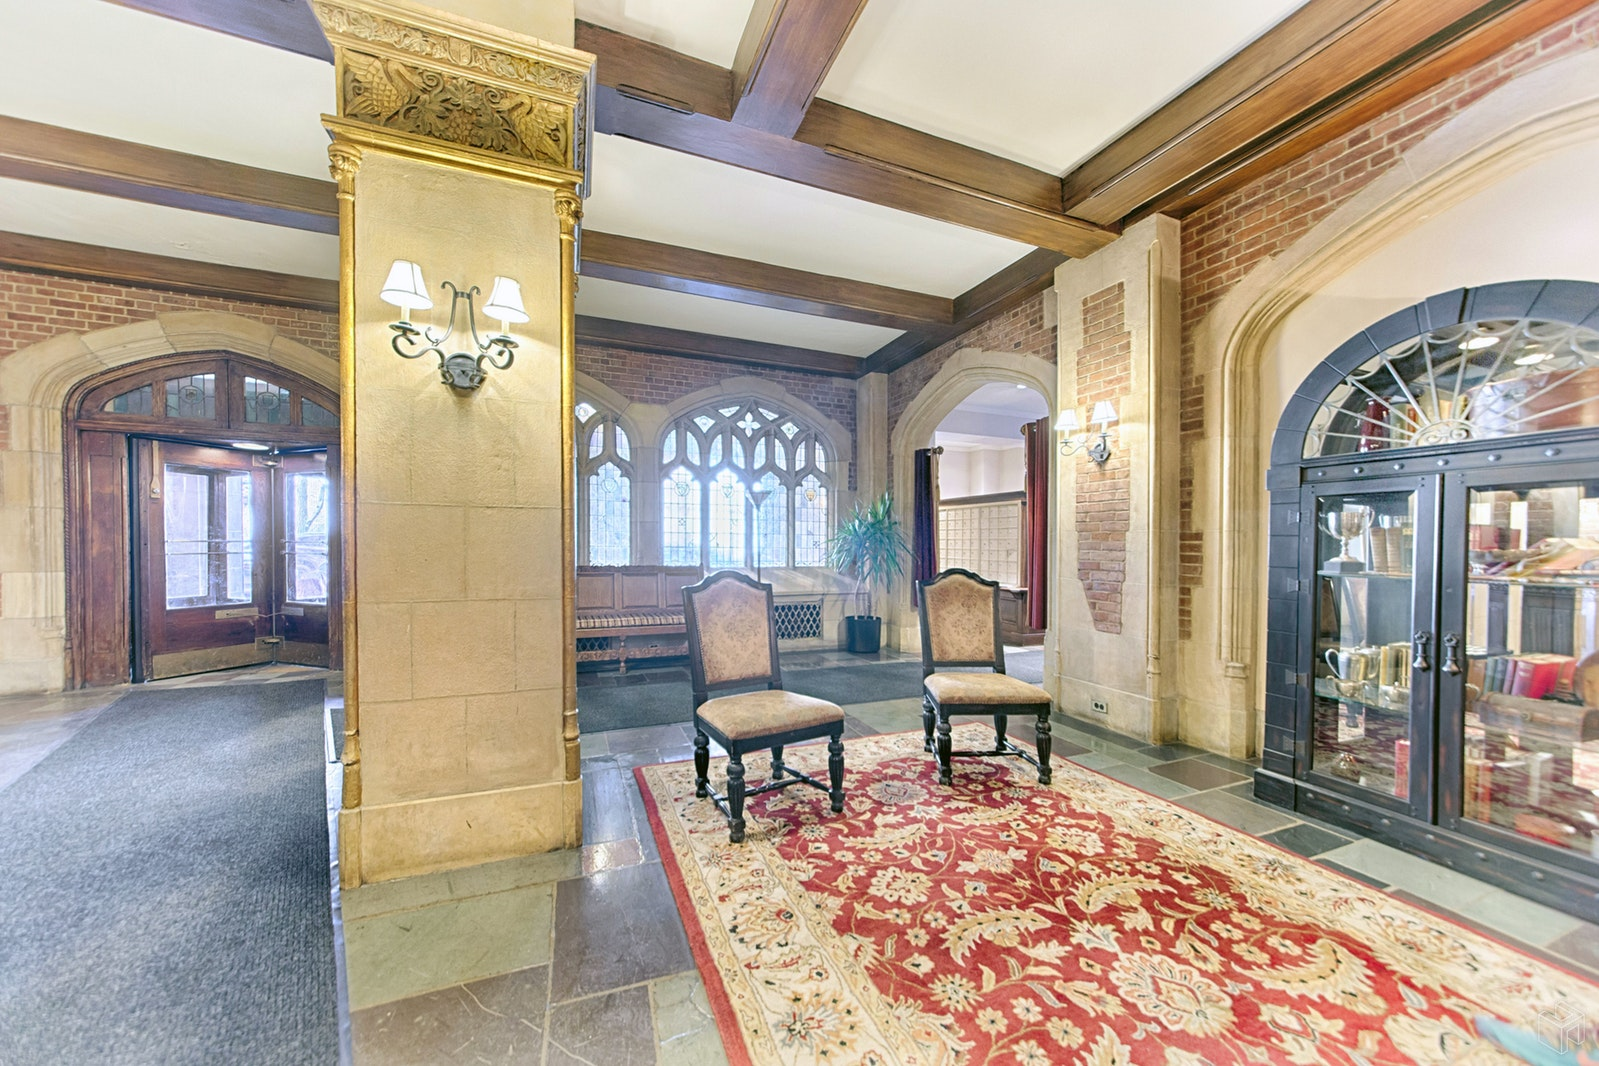 45 Tudor City Place 2114, Murray Hill Kips Bay, NYC, 10017, $385,000, Property For Sale, Halstead Real Estate, Photo 6